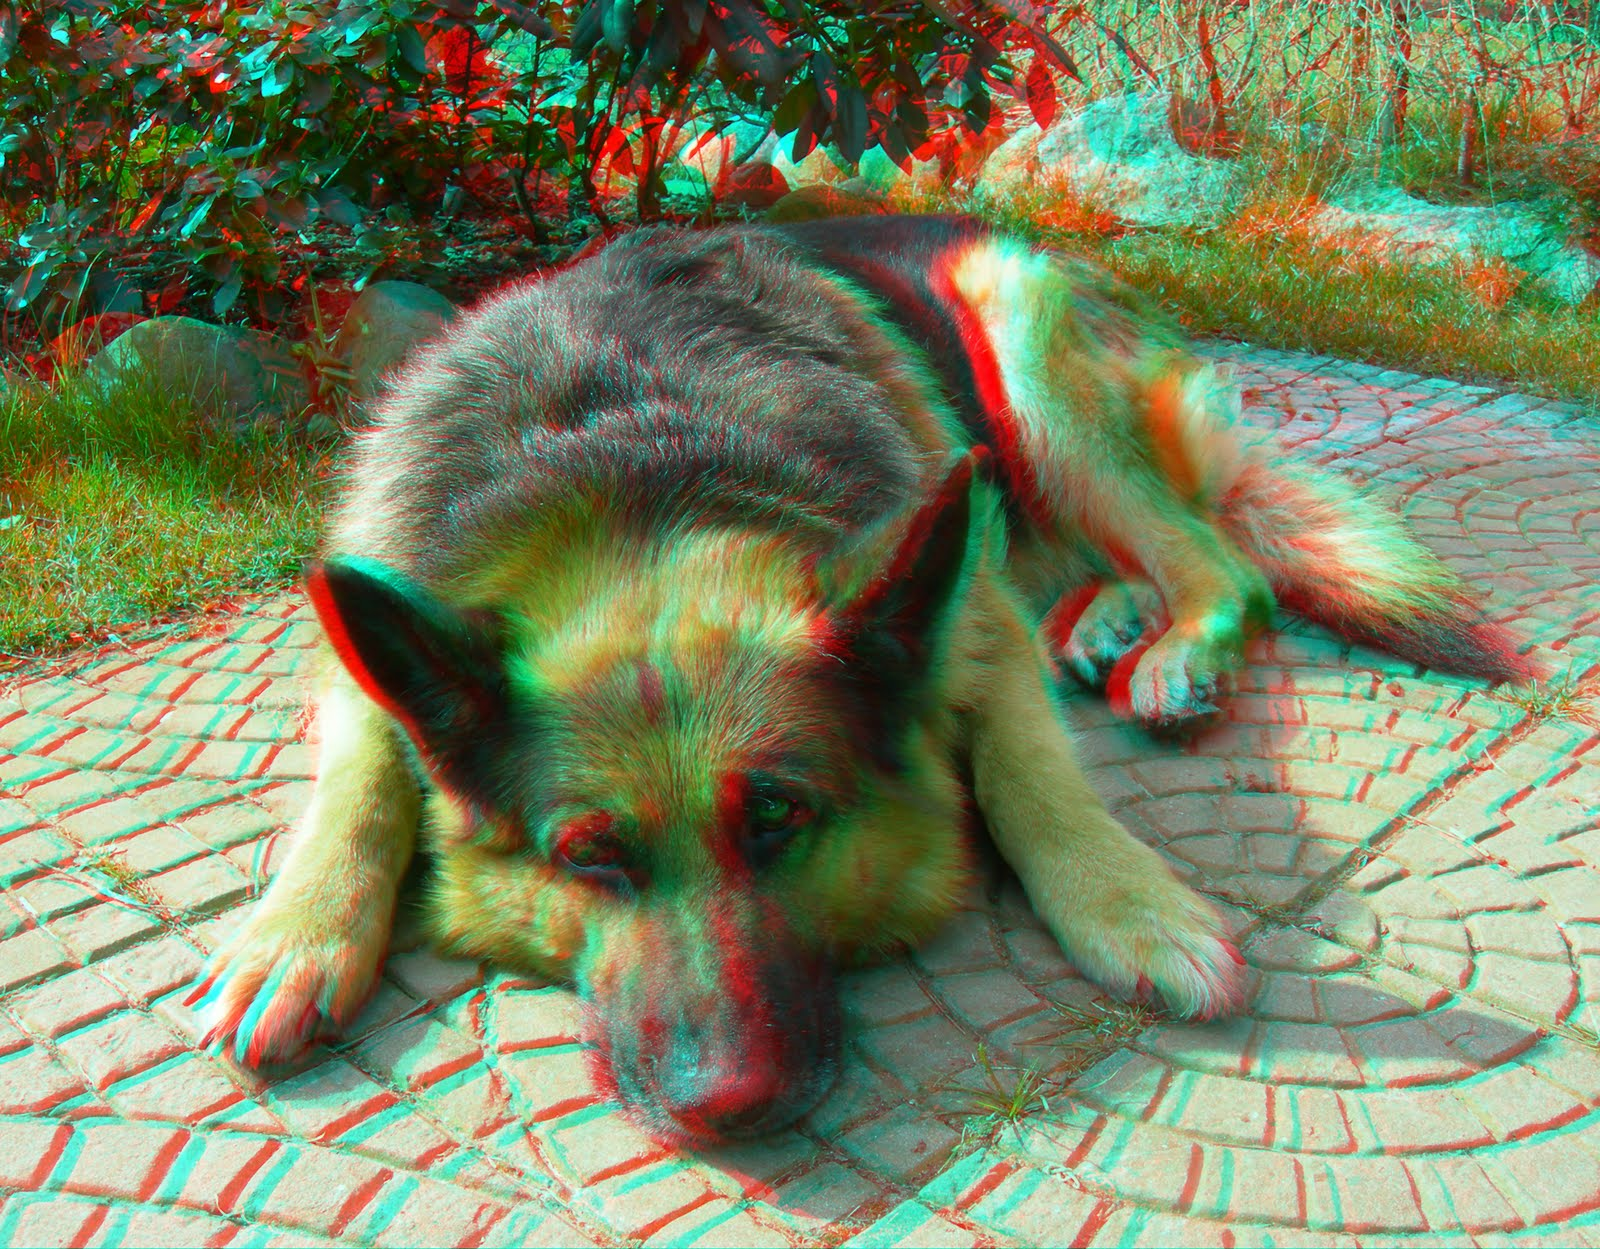 Projects In Computers: 3D Anaglyph Photography